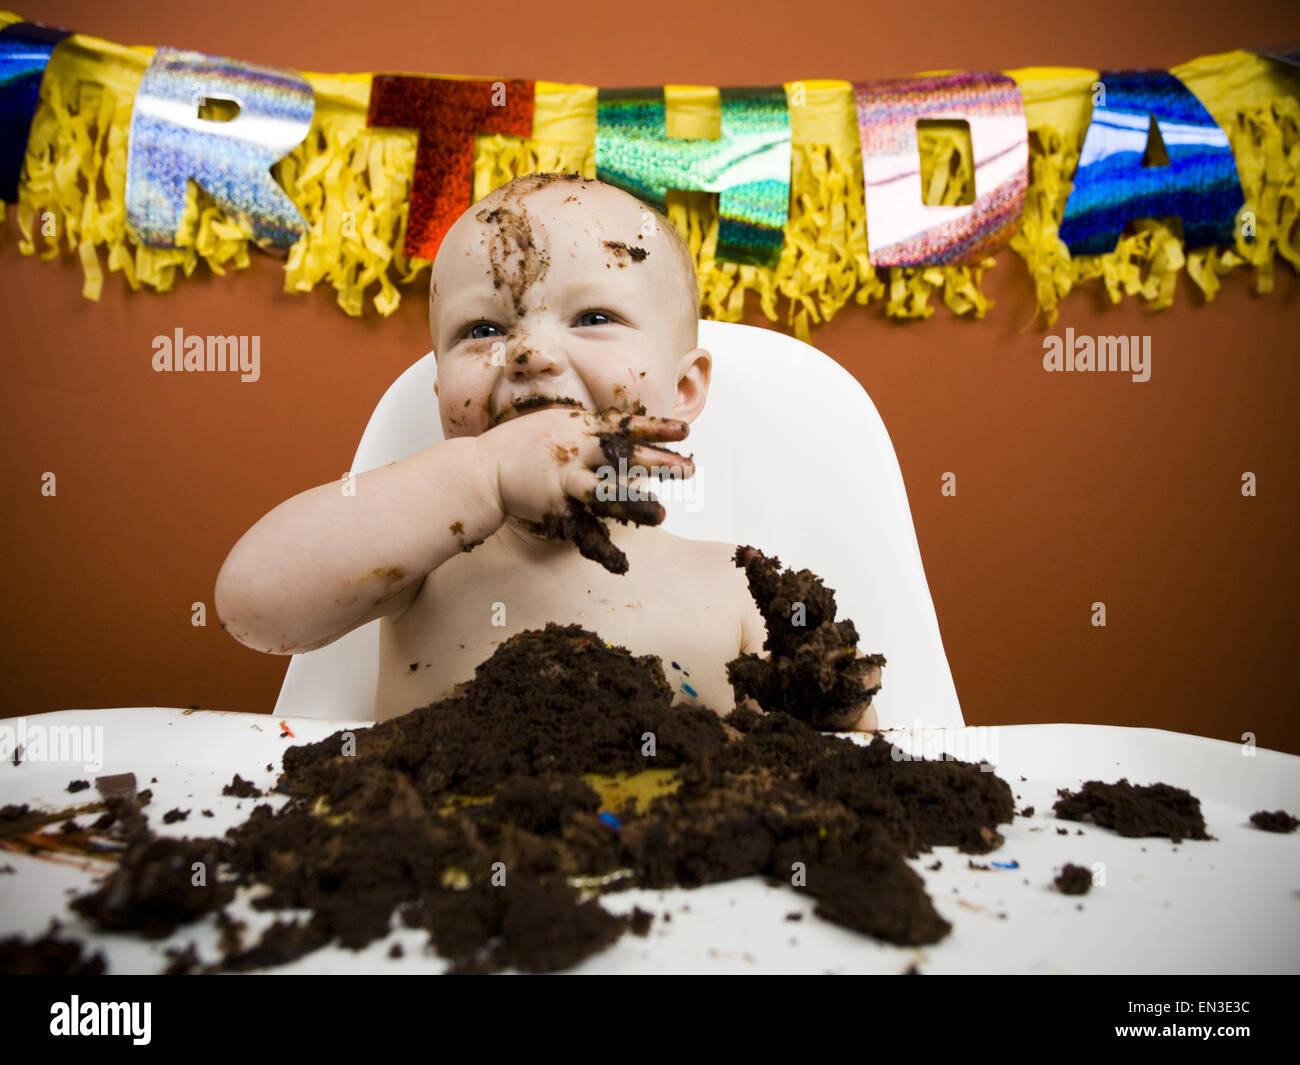 Baby Eating Birthday Cake Stock Photo 81826176 Alamy